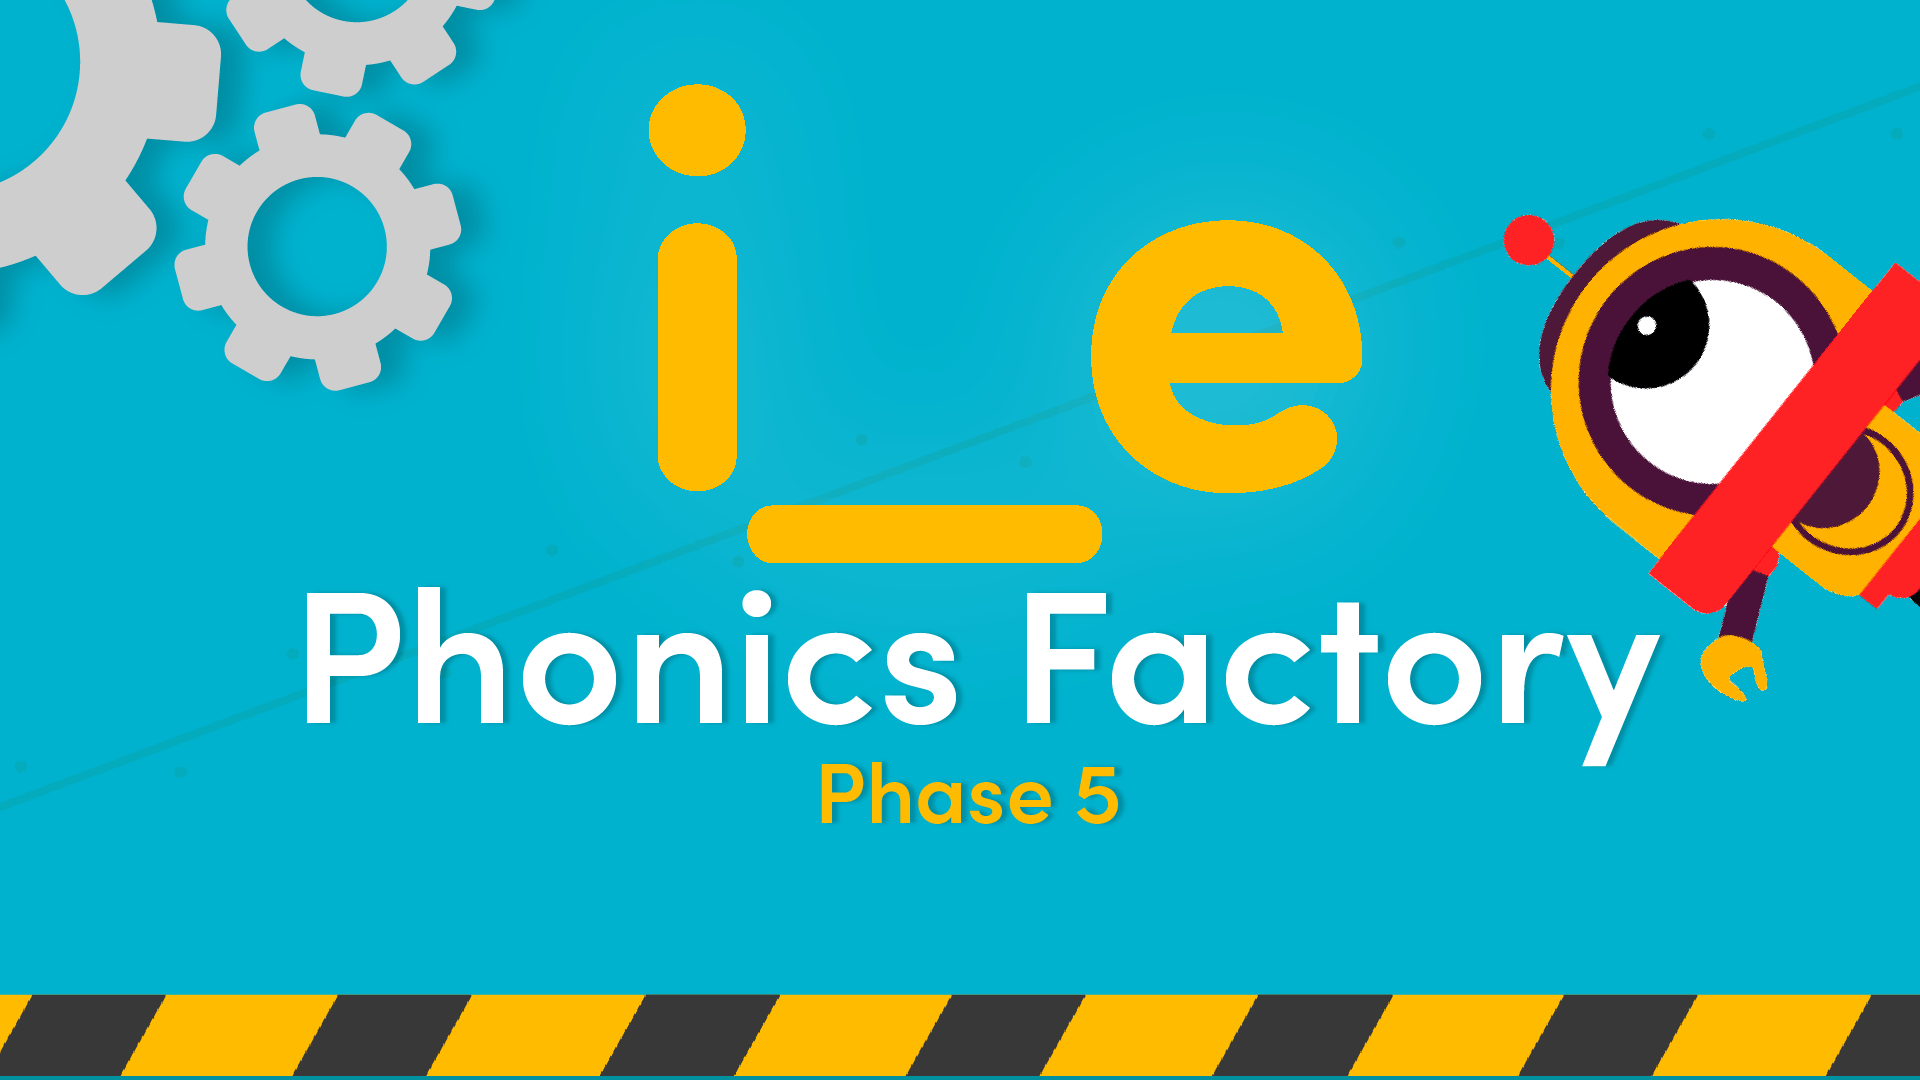 Phonics Phase 5 I E Sound Video In The Phonics Factory